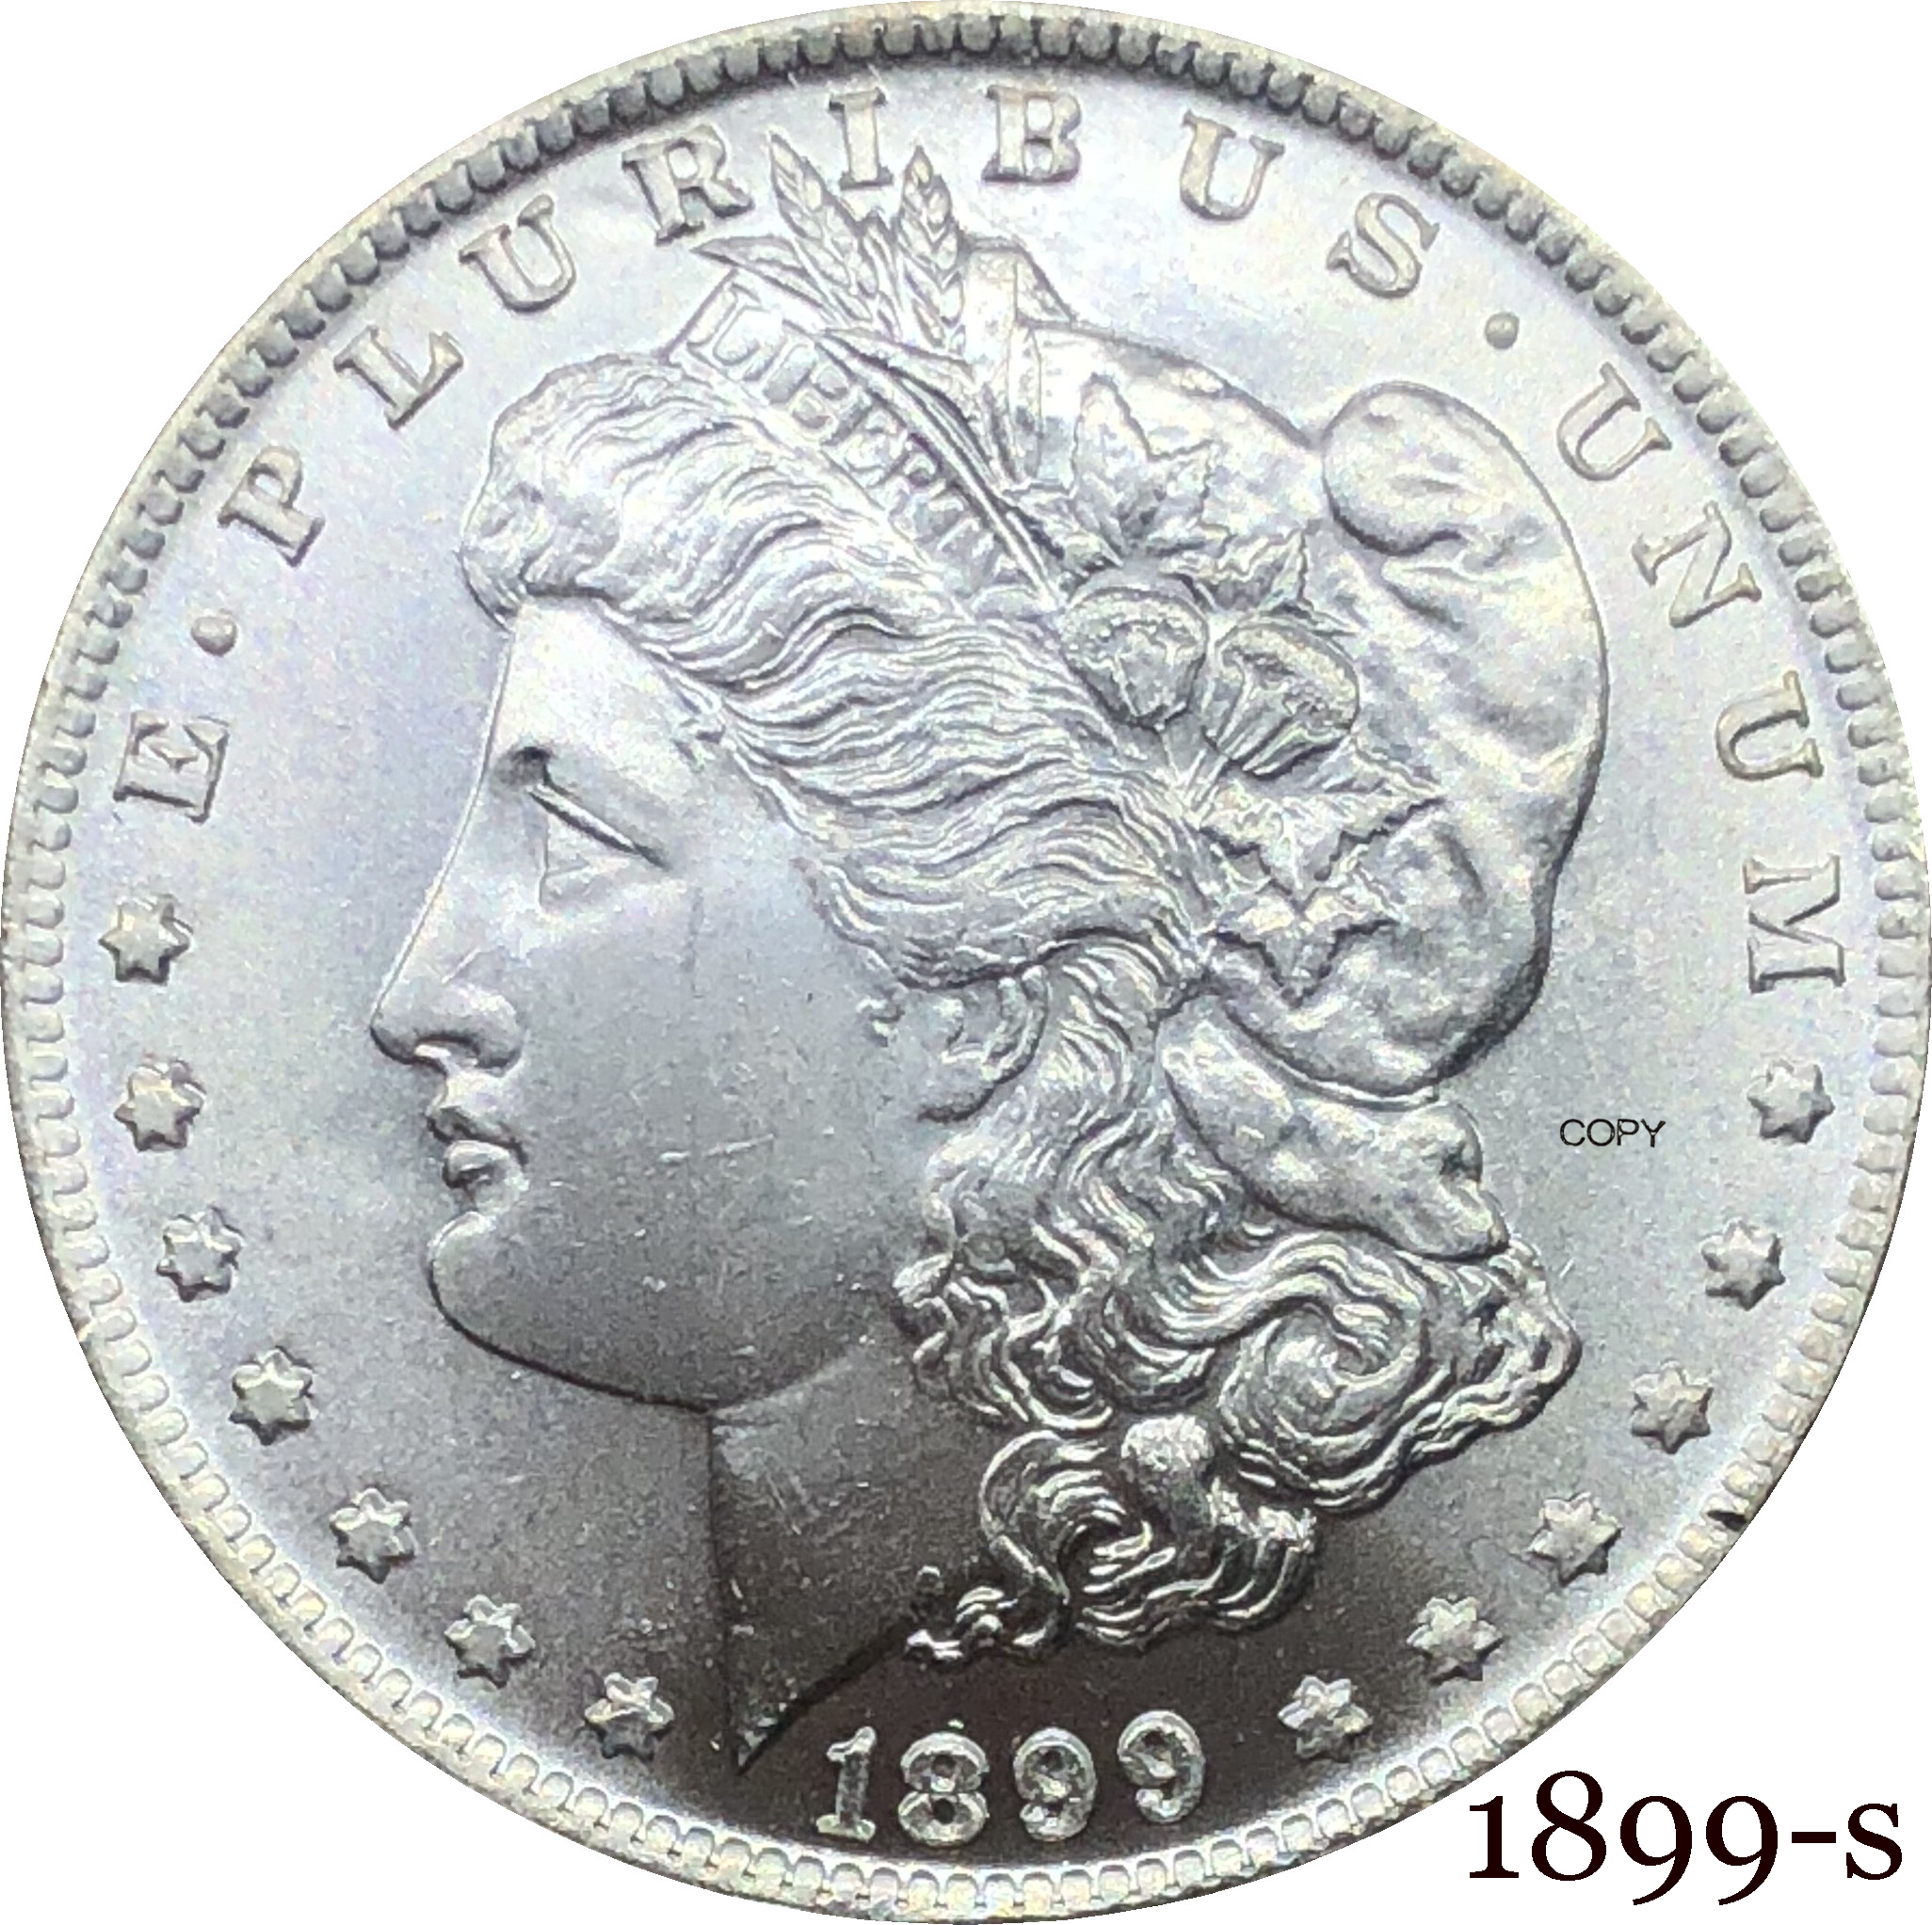 United States Of America 1899 S  Morgan One Dollar US Coin Liberty Cupronickel Silver Plated In God We Trust Copy Coin